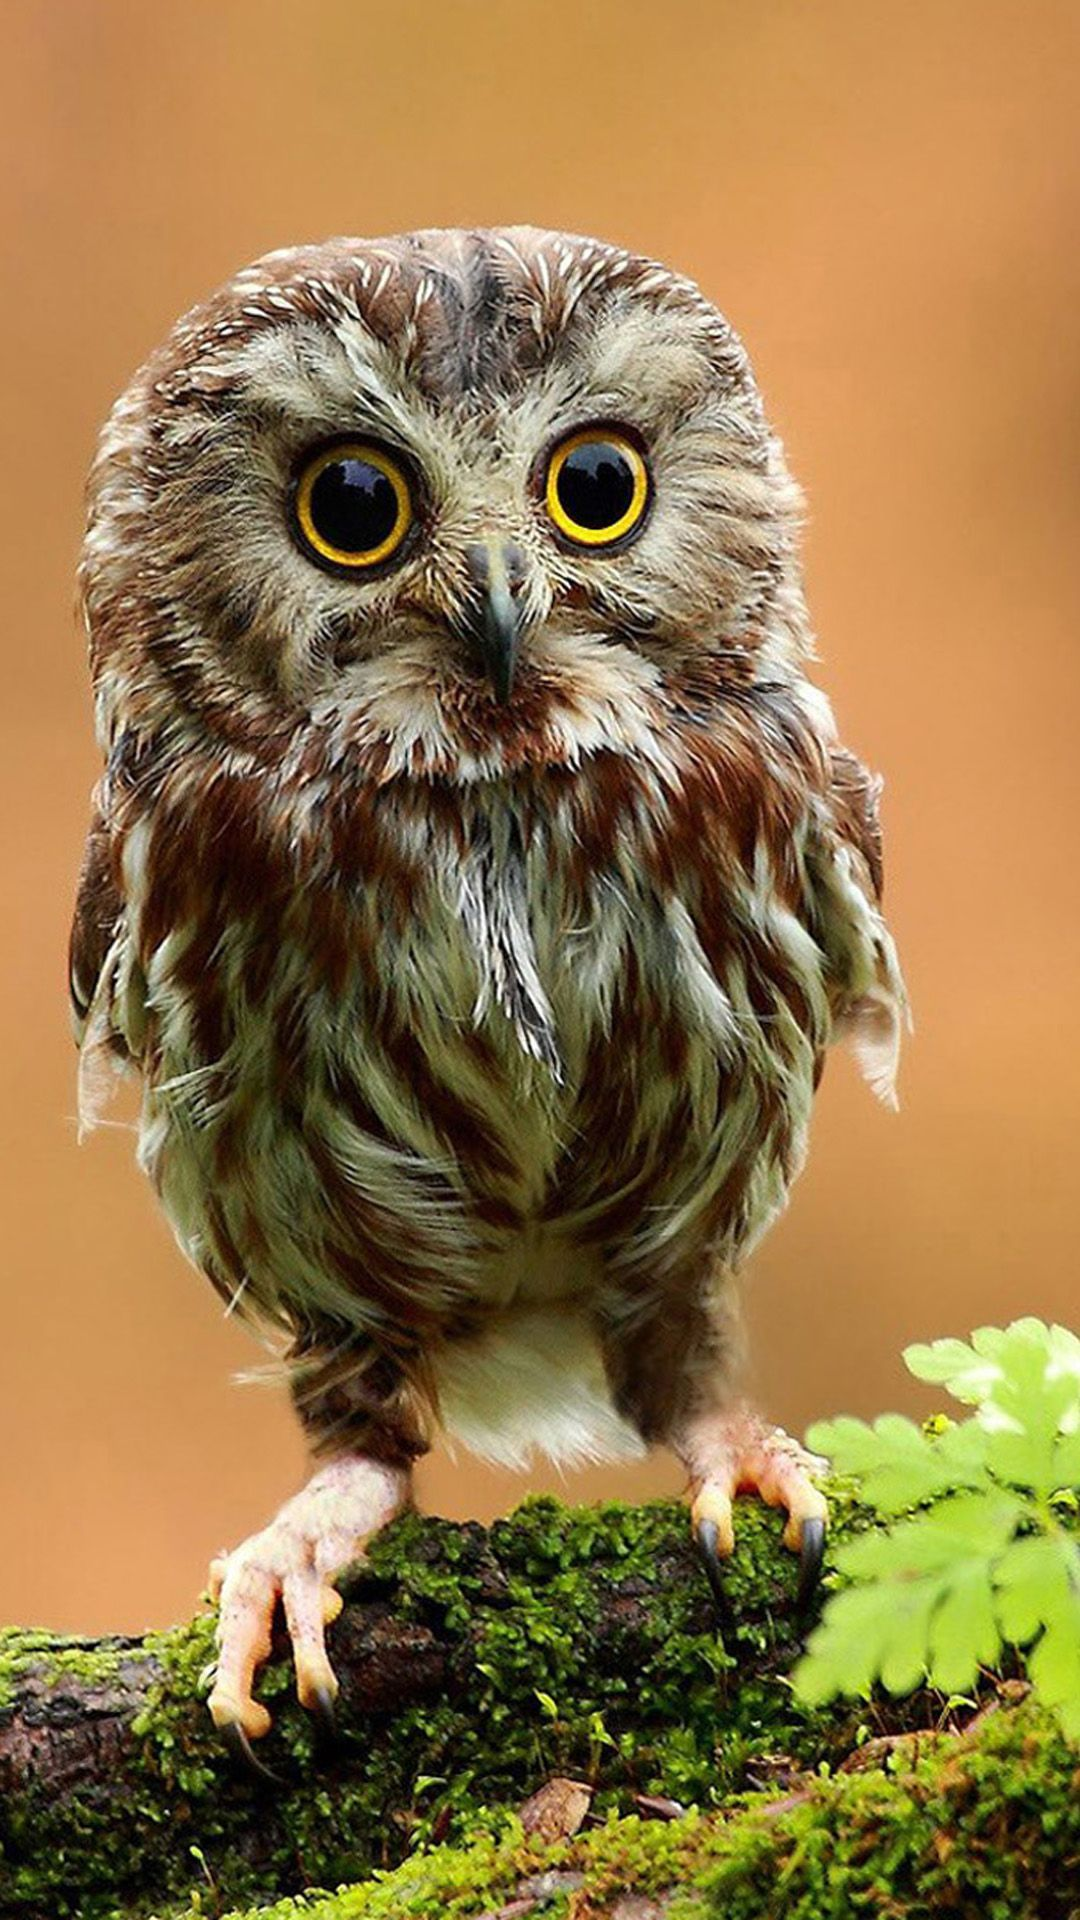 Owl iPhone Wallpapers - Top Free Owl iPhone Backgrounds ...